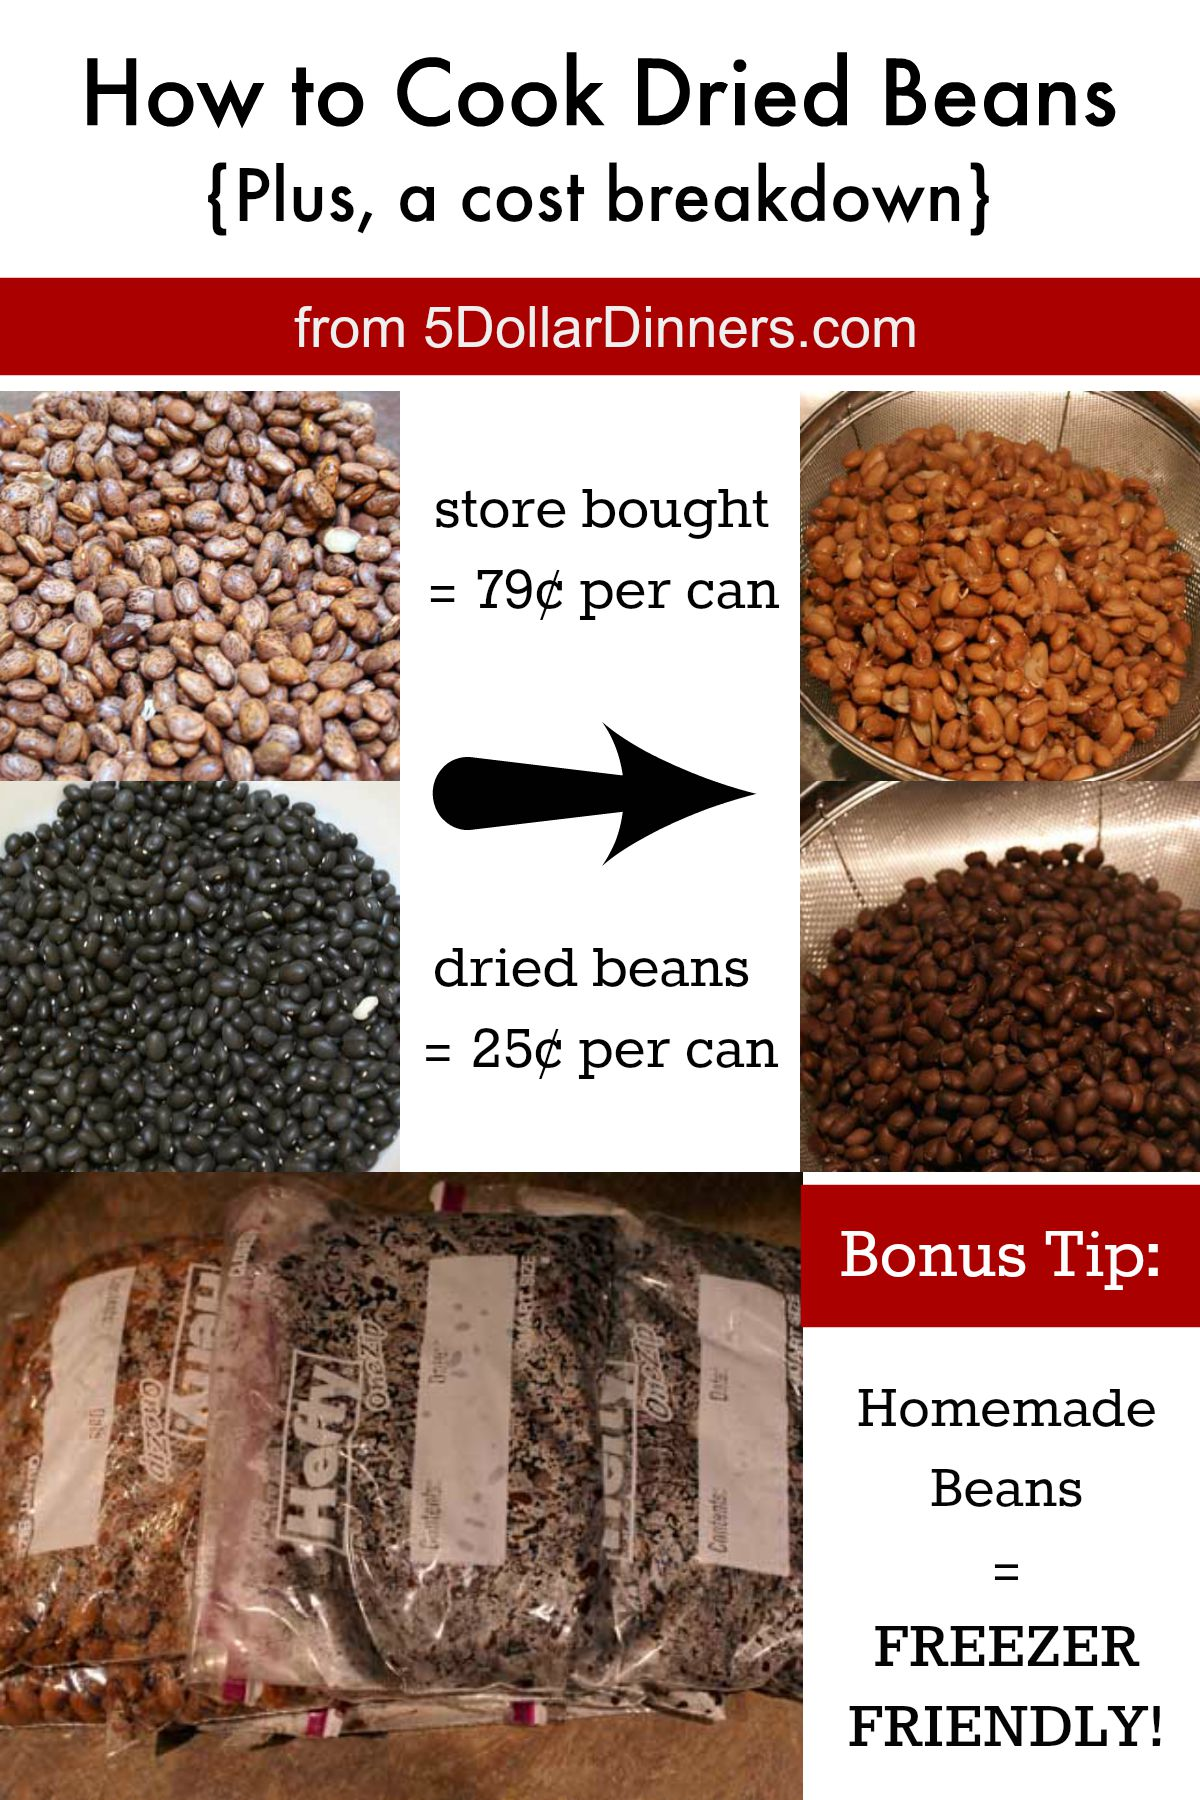 How to Cook Dried Beans   5DollarDinners.com